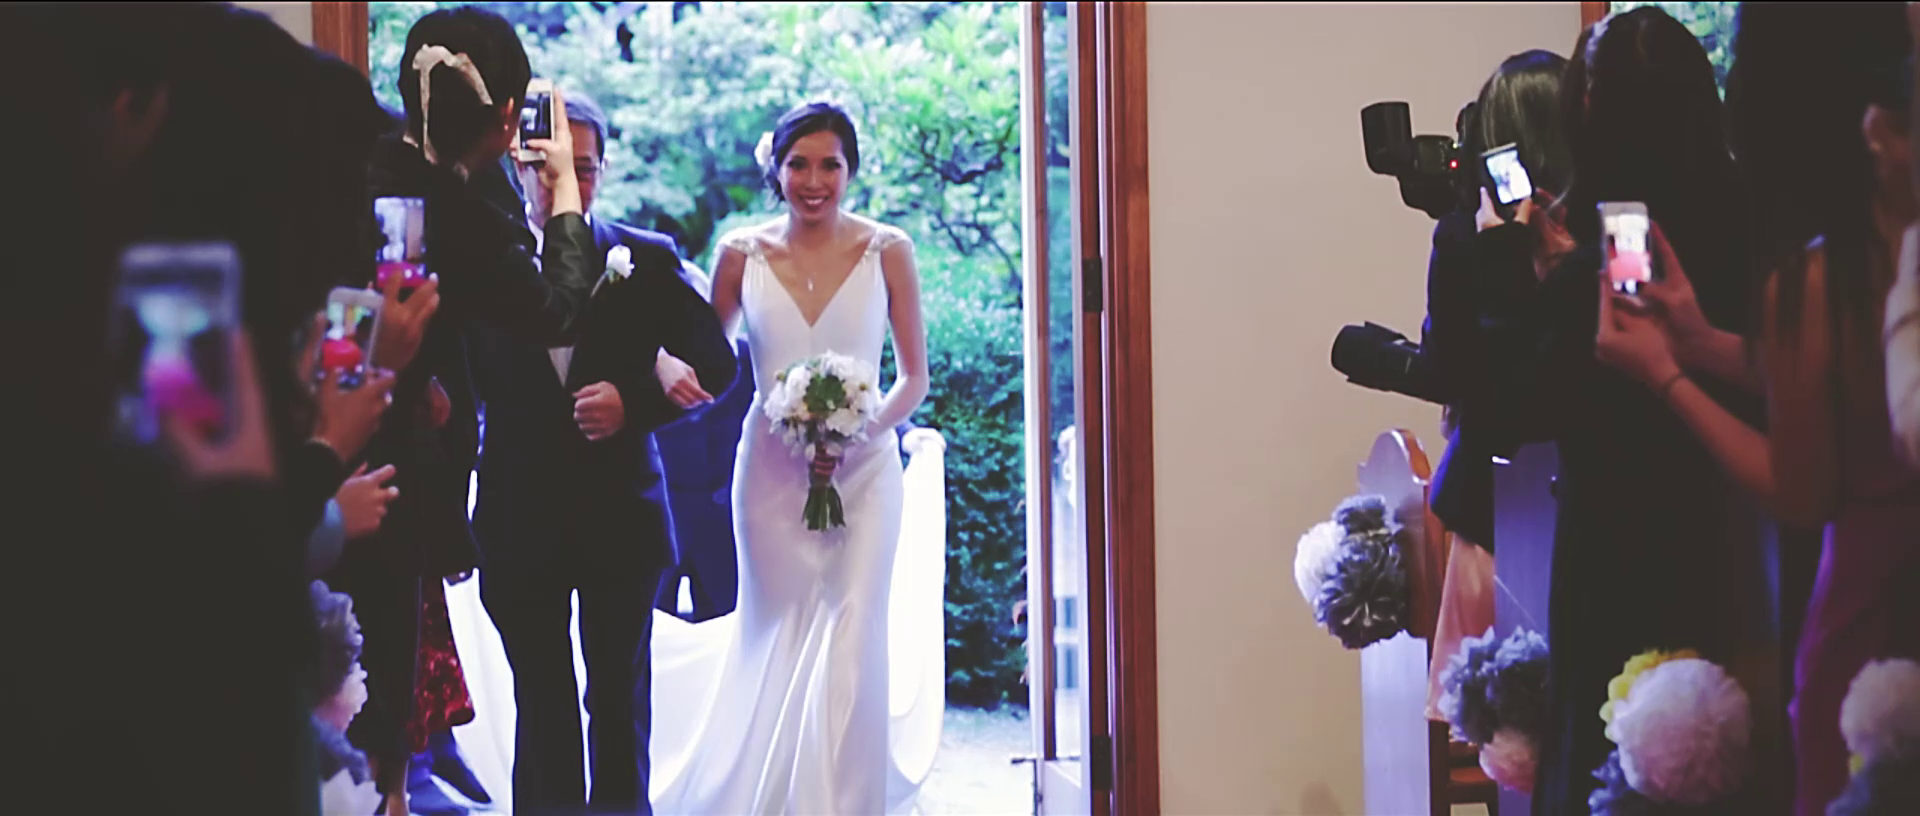 Wedding Videographer Melbourne - Unplugged Wedding